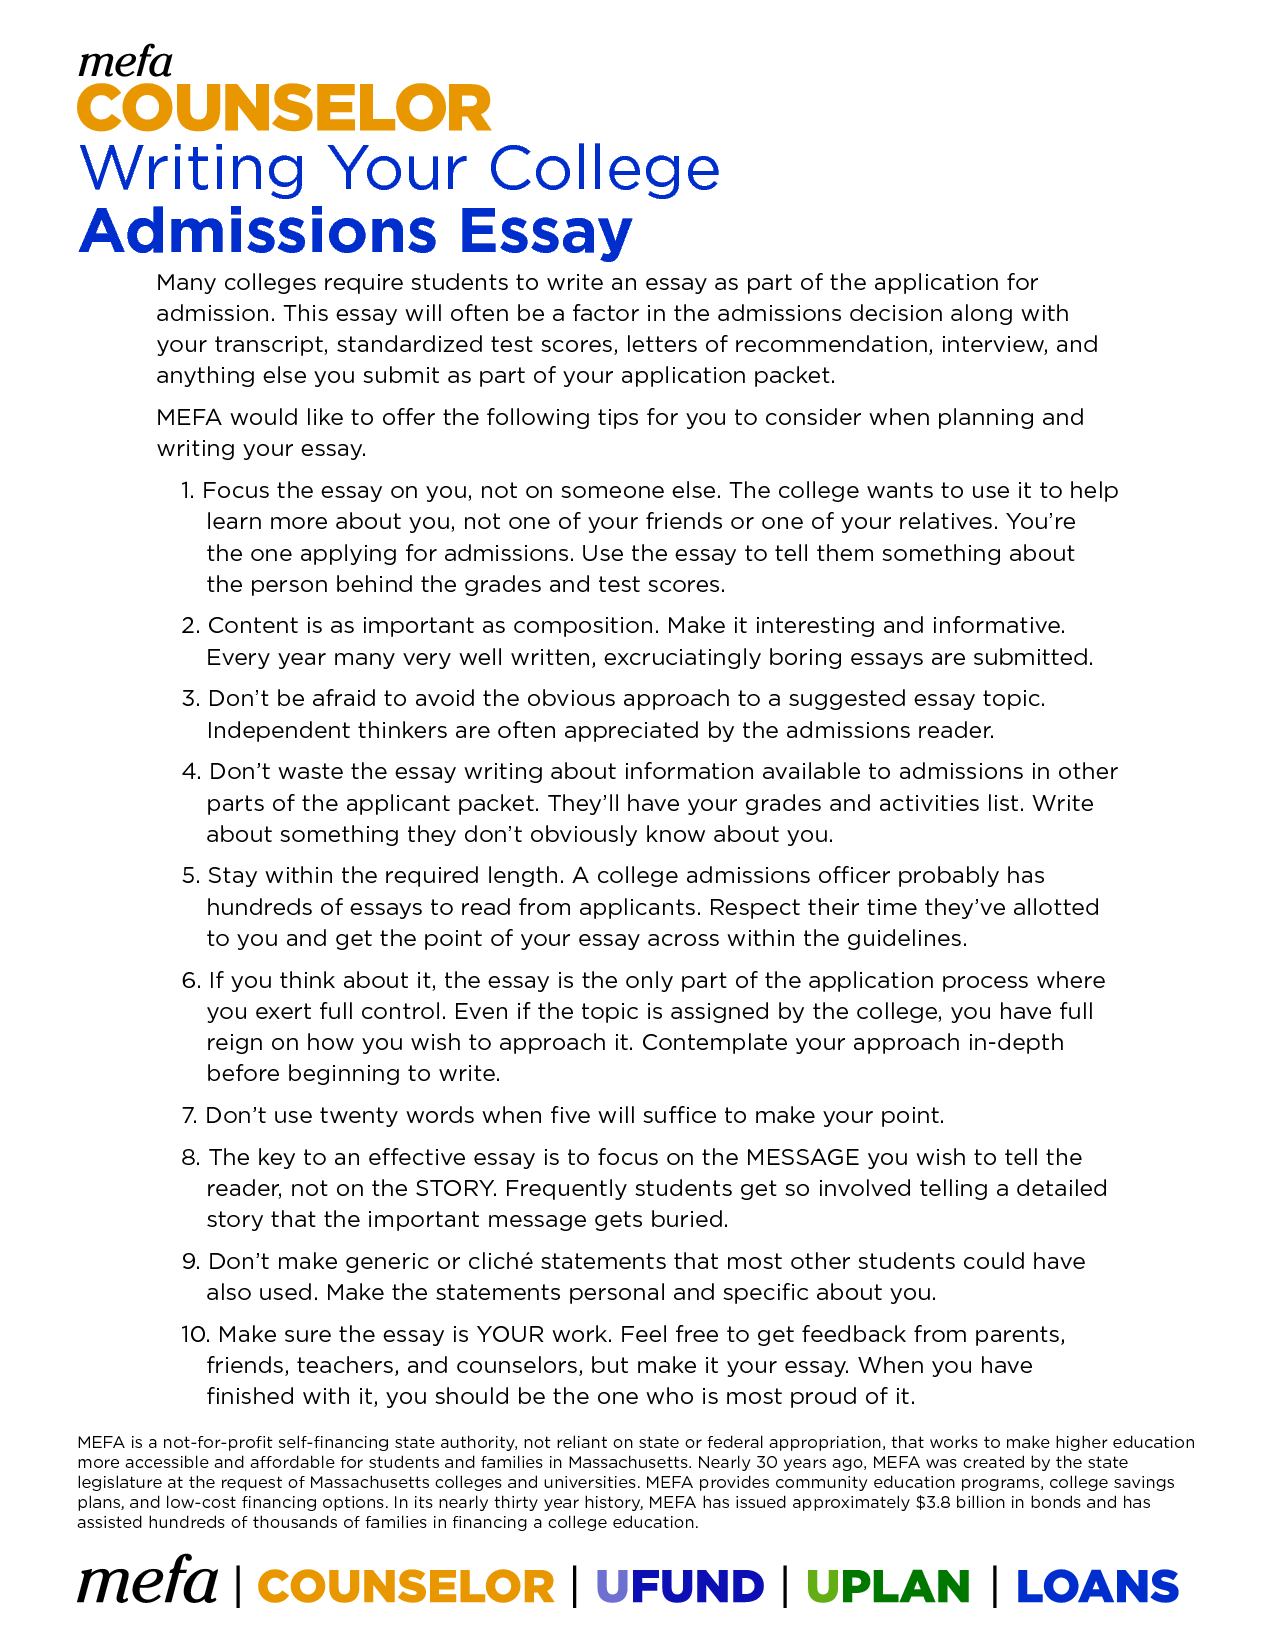 essays for college admissions College admissions officers read thousands of college application essays these tips and strategies can help you make a strong impression.